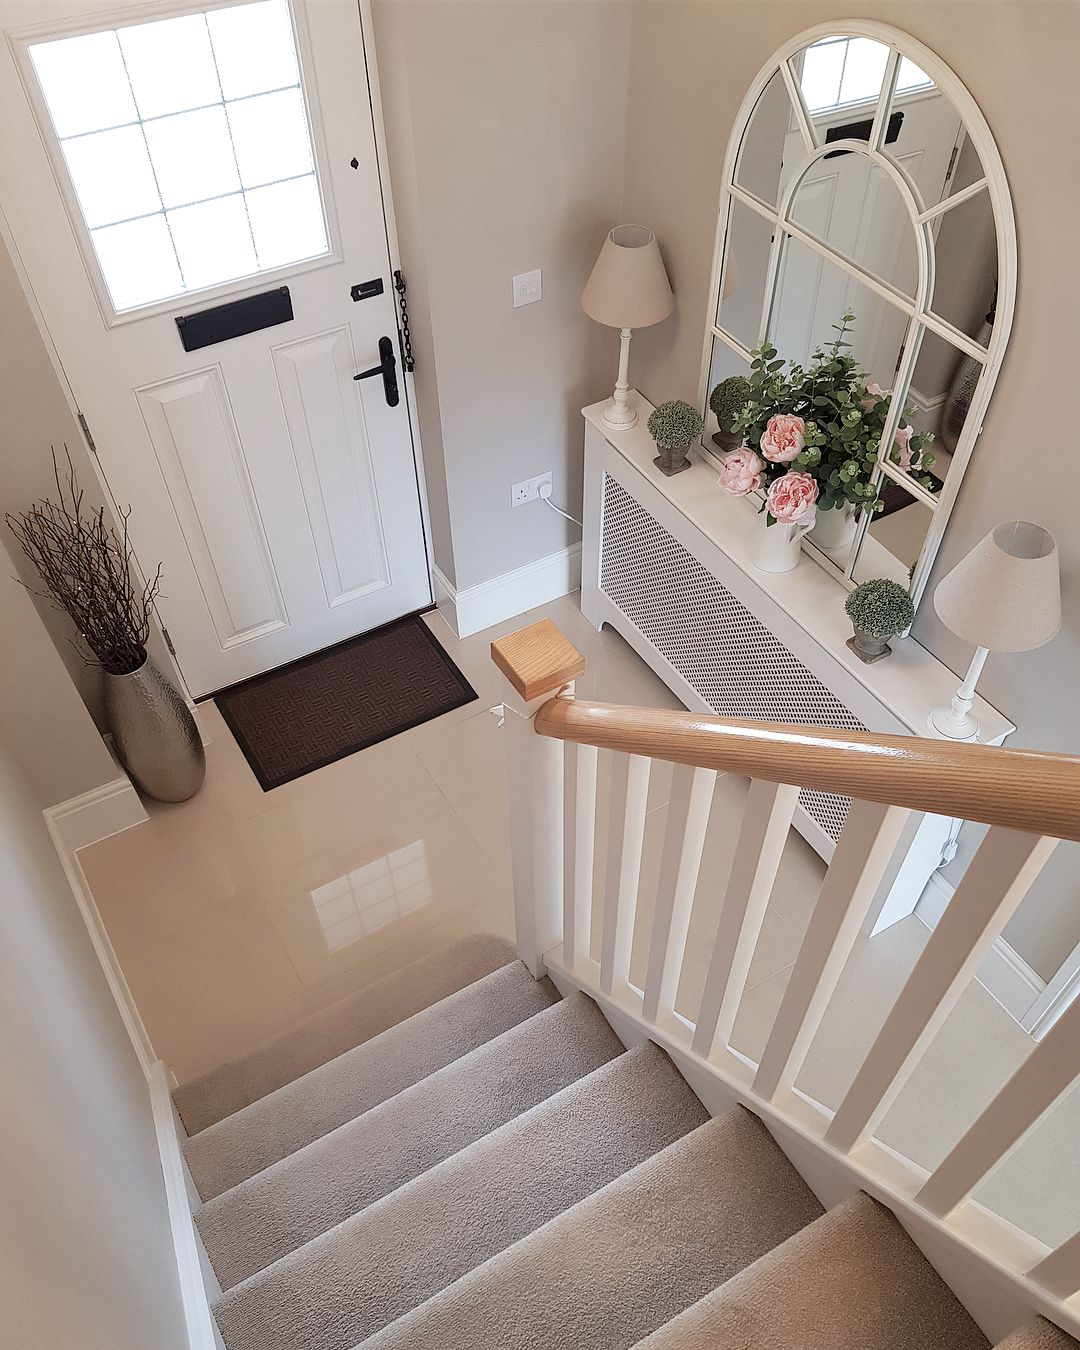 Home Design Ideas Instagram: Claire Instagram : Cleaning And Tidying The House With A